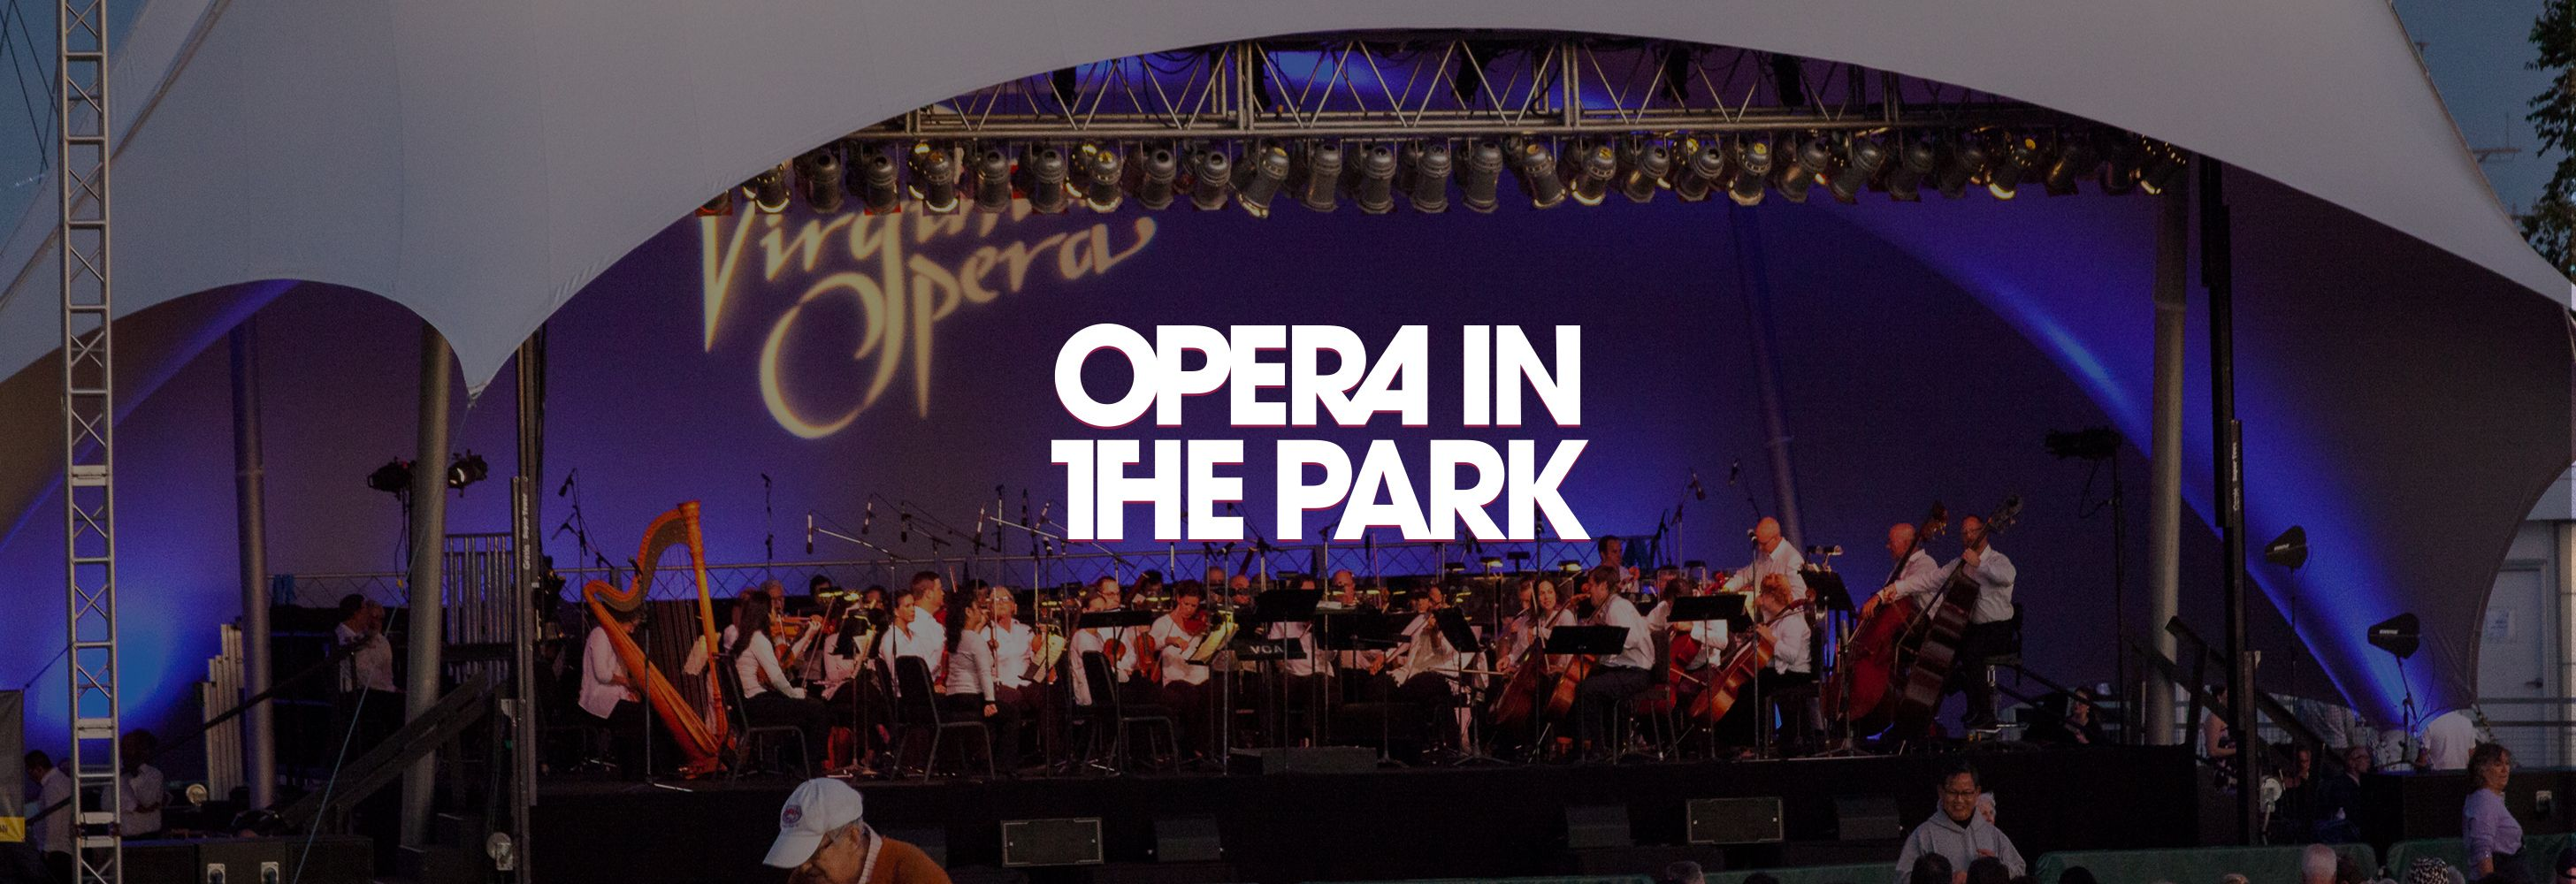 OperaInThePark.jpg